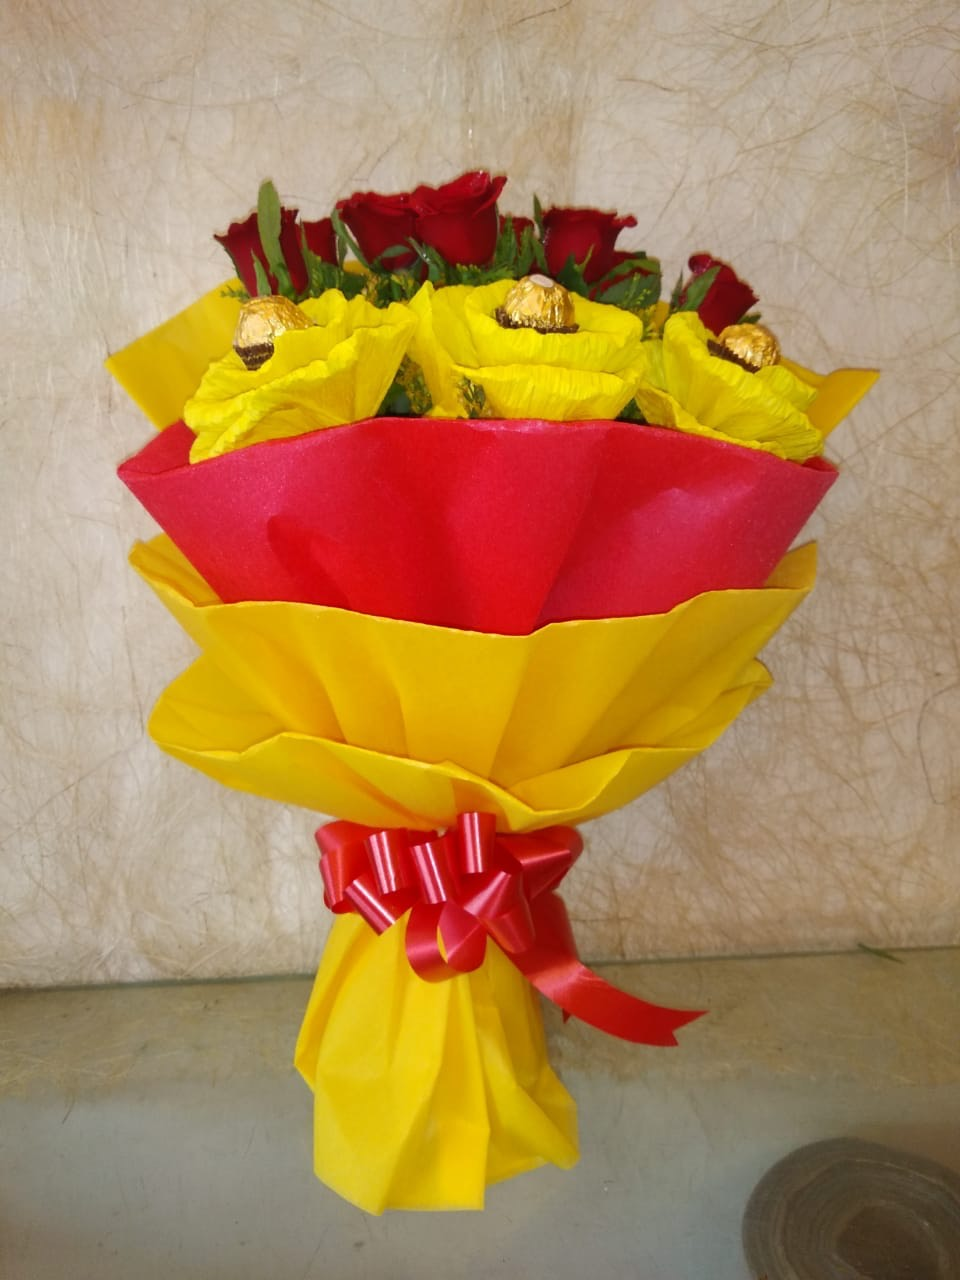 Flowers Delivery in Sector 7 GurgaonRed Roses Ferrero Rocher Bunch